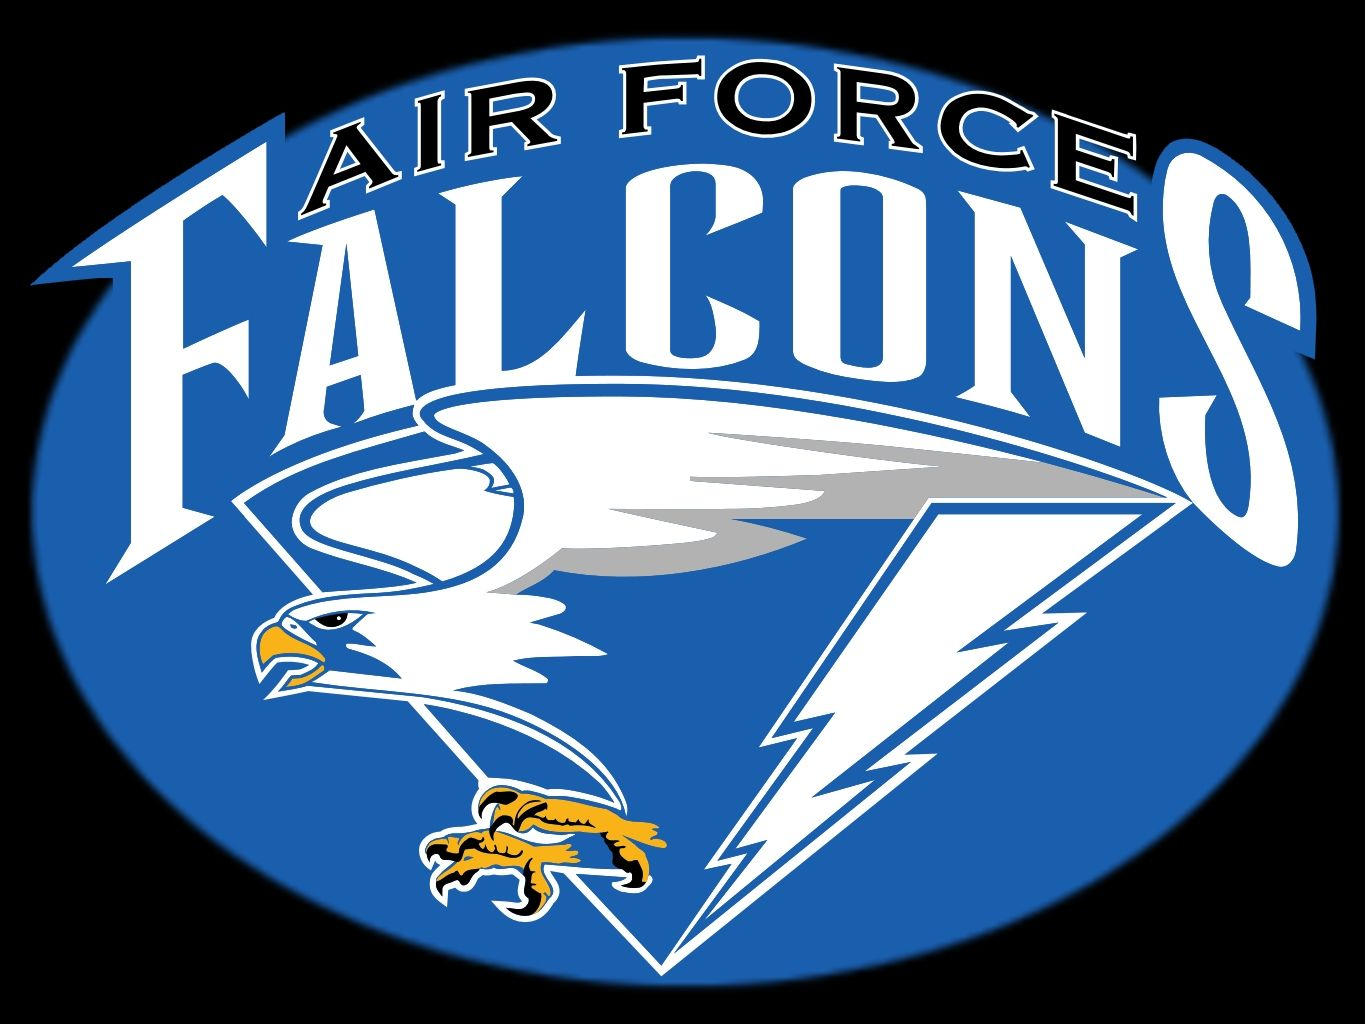 Air Force Falcons Air force academy, Air force, Falcons